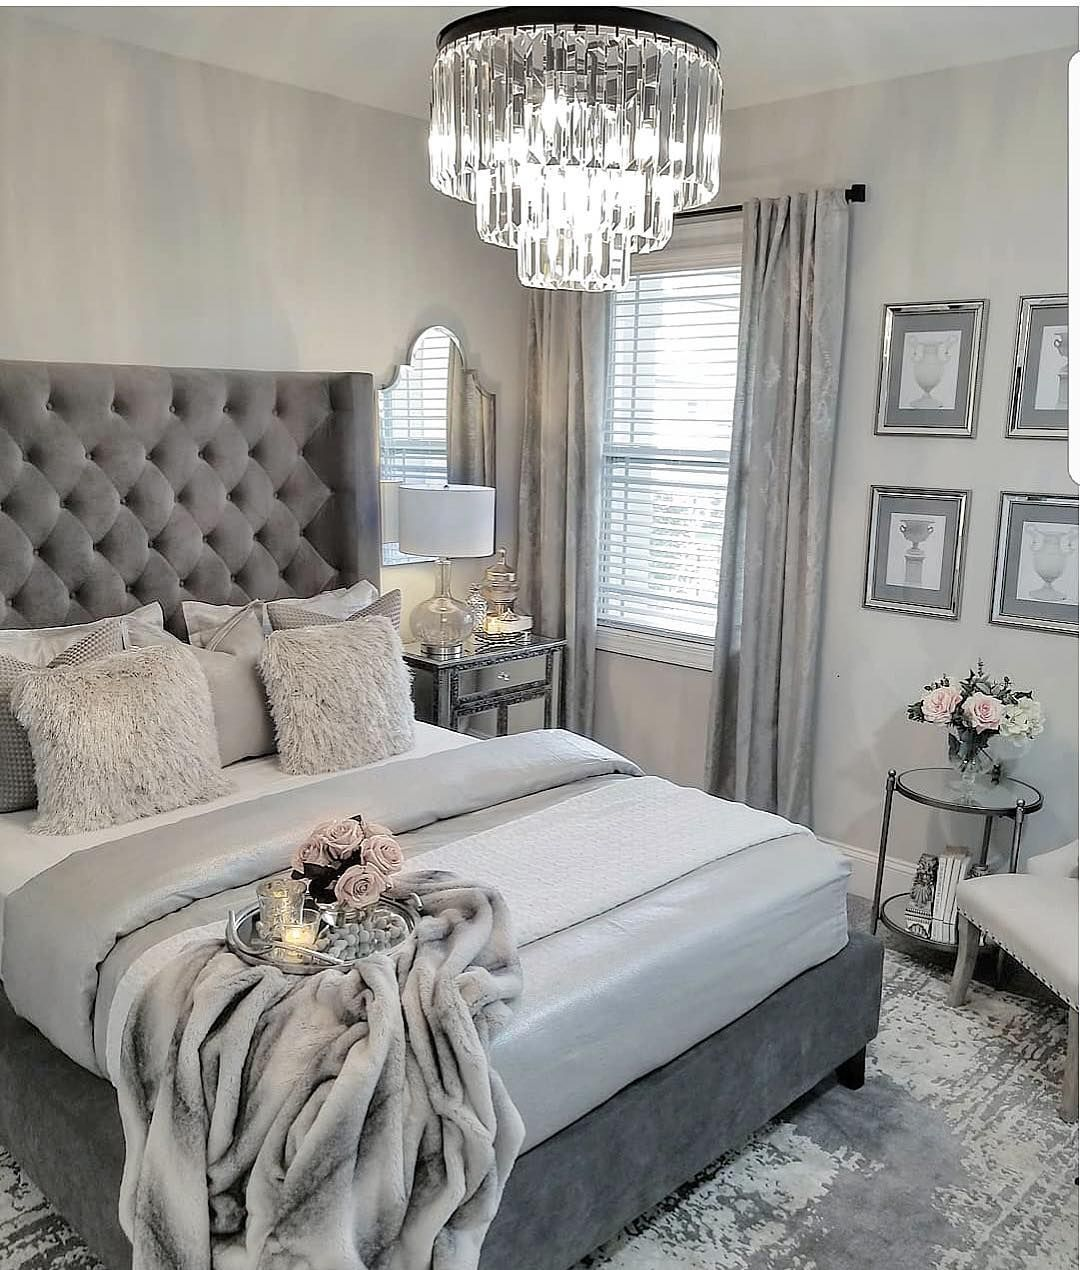 "Interior Design & Home Decor on Instagram: ""Absolutely in love with the way Grace @lovefordesigns styled our Inspire Me! monthly home decor subscription box in her guest bedroom!  The…"""